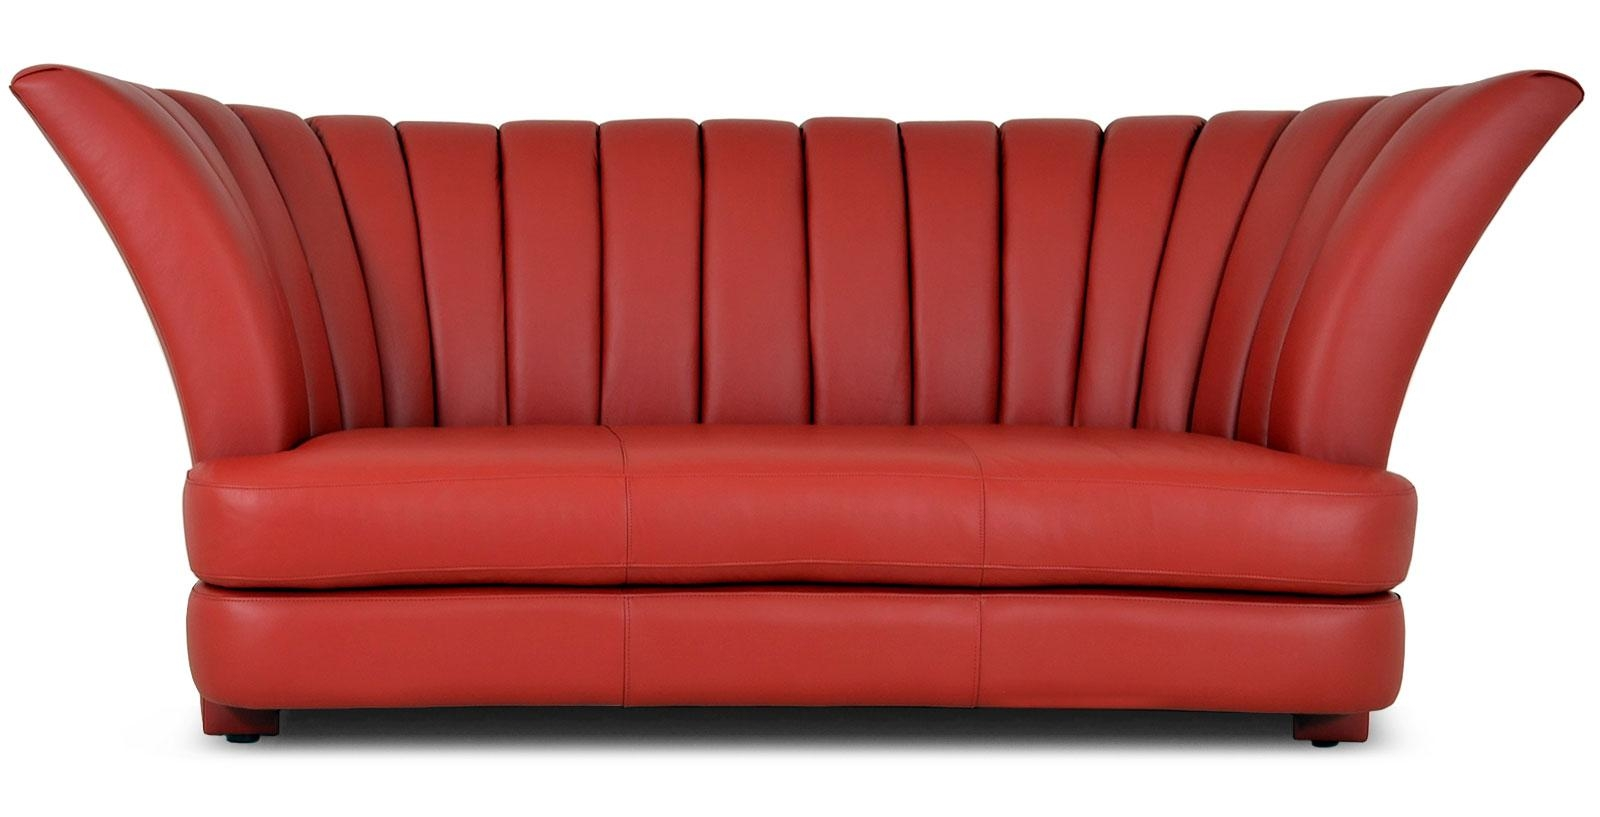 Home ‹‹ The Leather Sofa Company Pertaining To Western Style Sectional Sofas (Image 6 of 20)